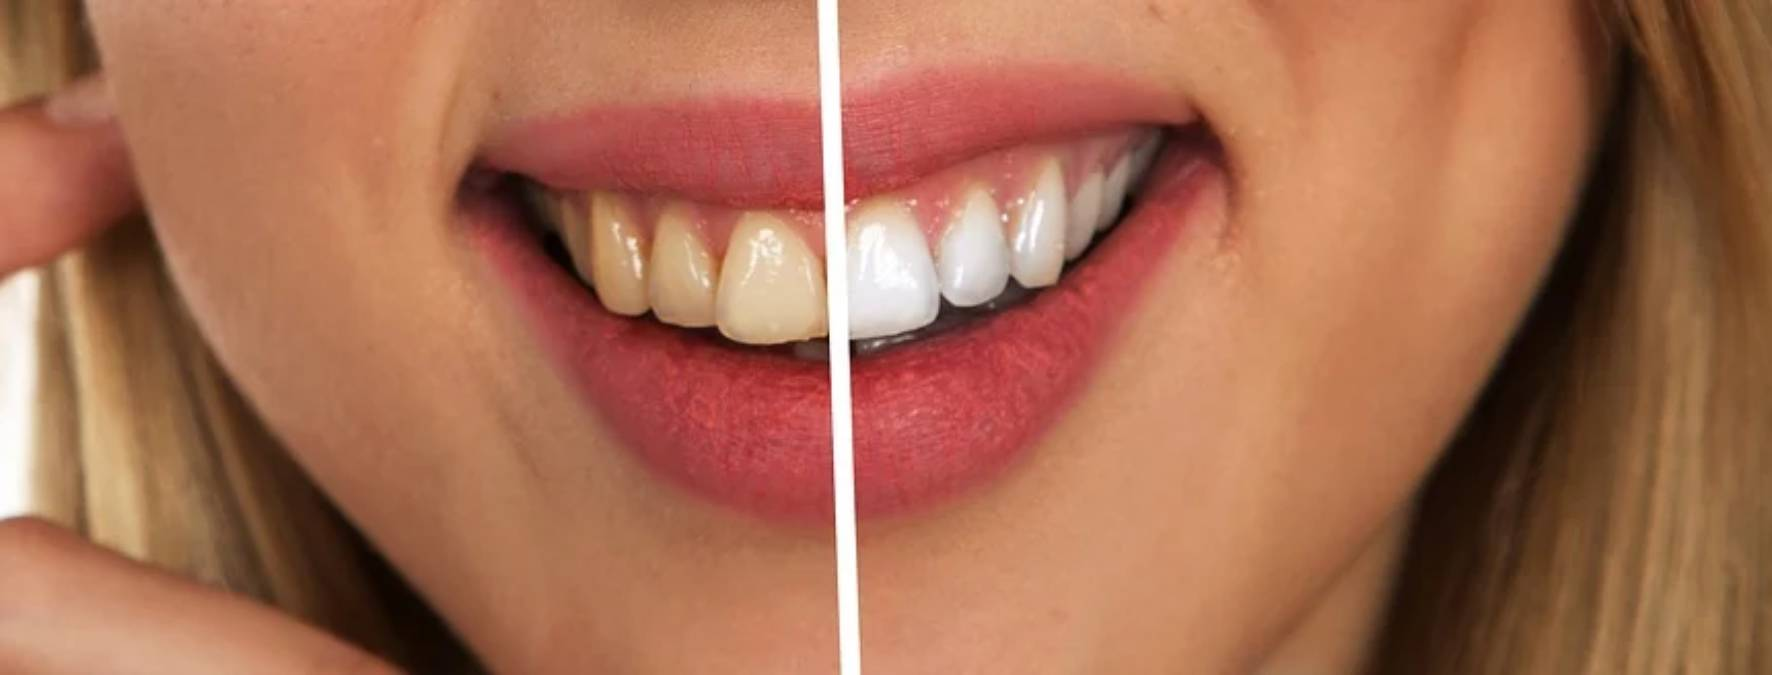 Natural teeth whitening procedures: 6 natural ingredients for teeth whitening 1 - Daily Medicos